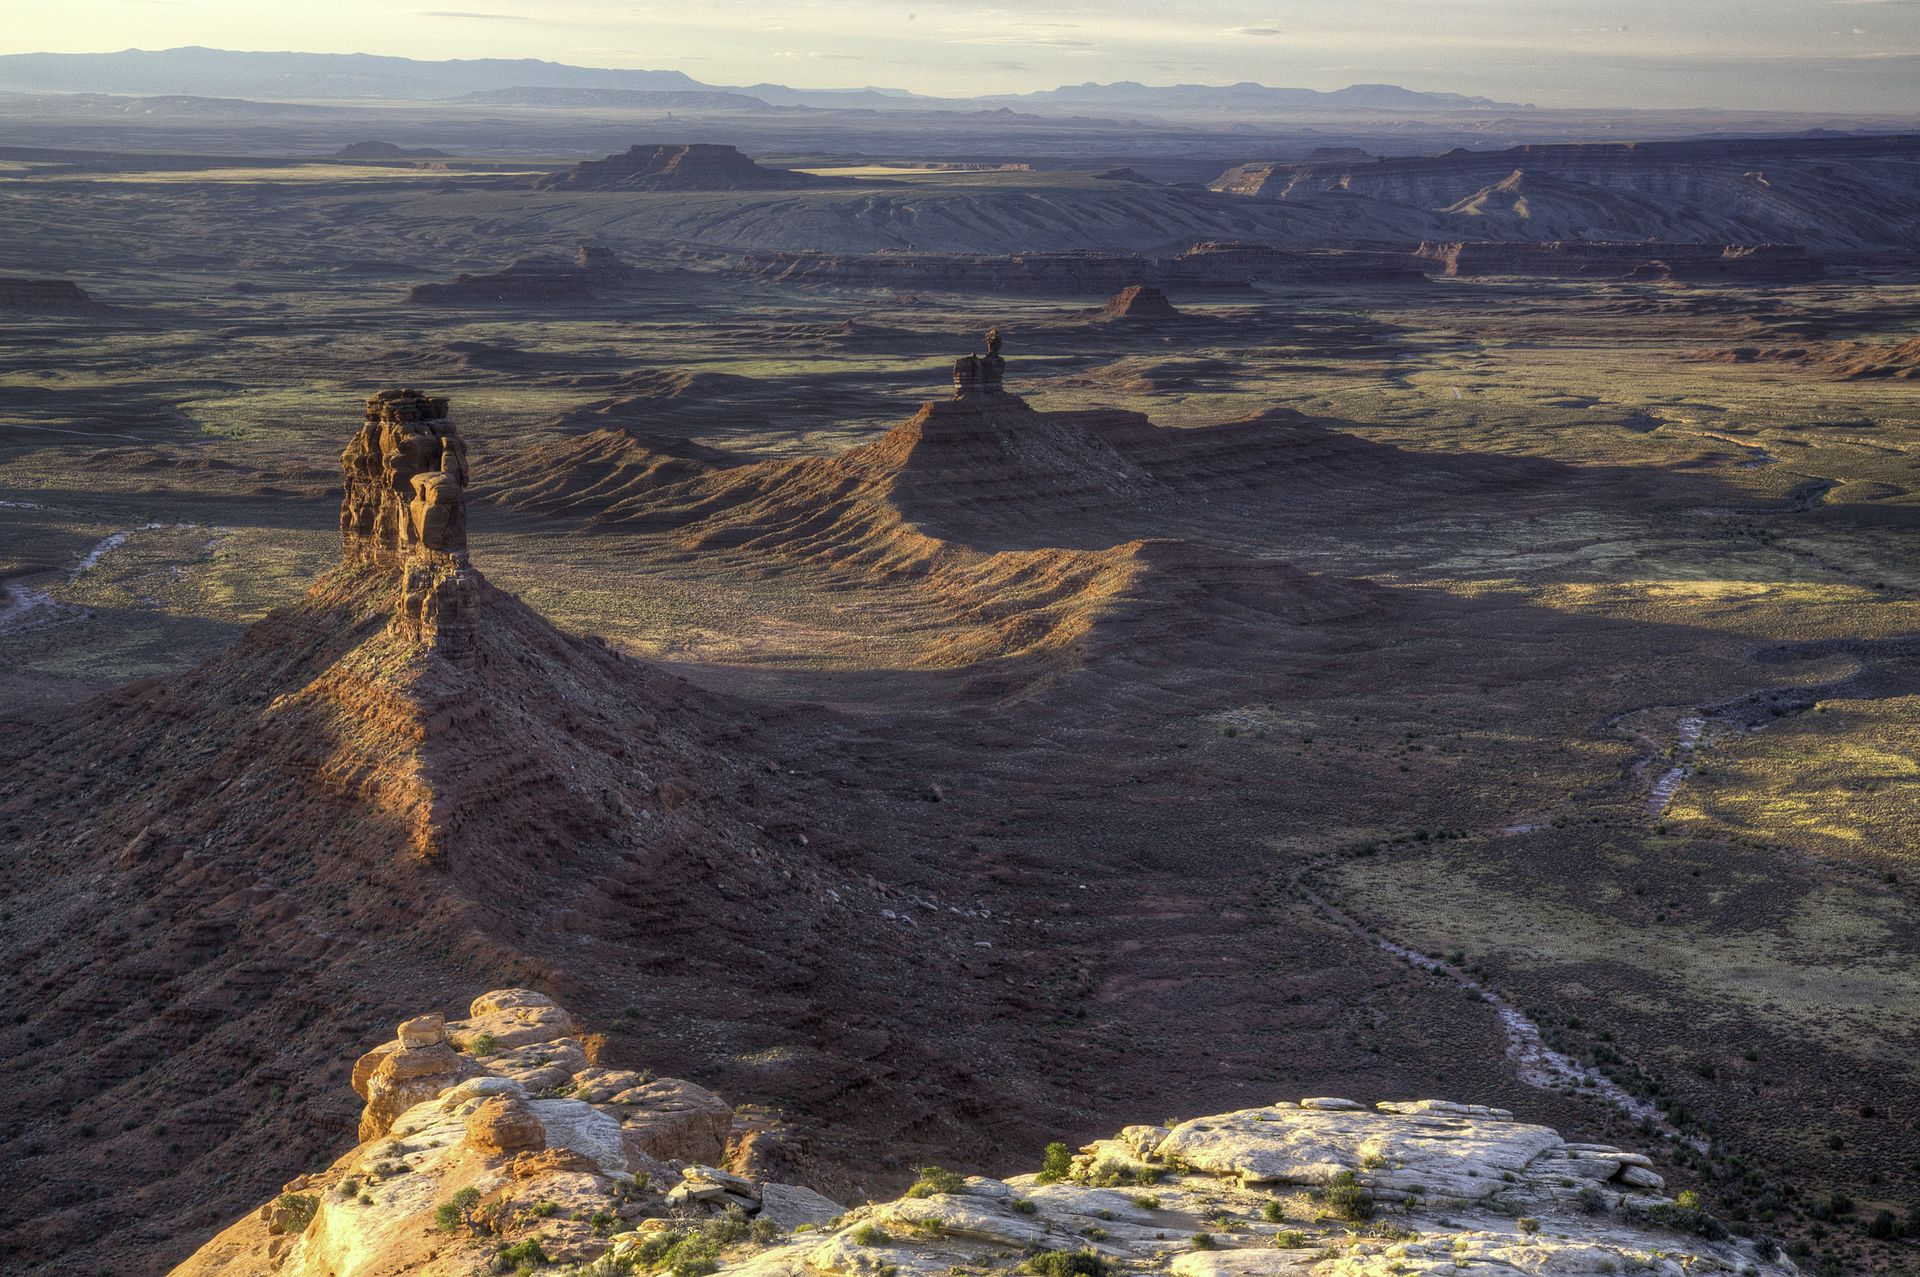 National monuments help local economies